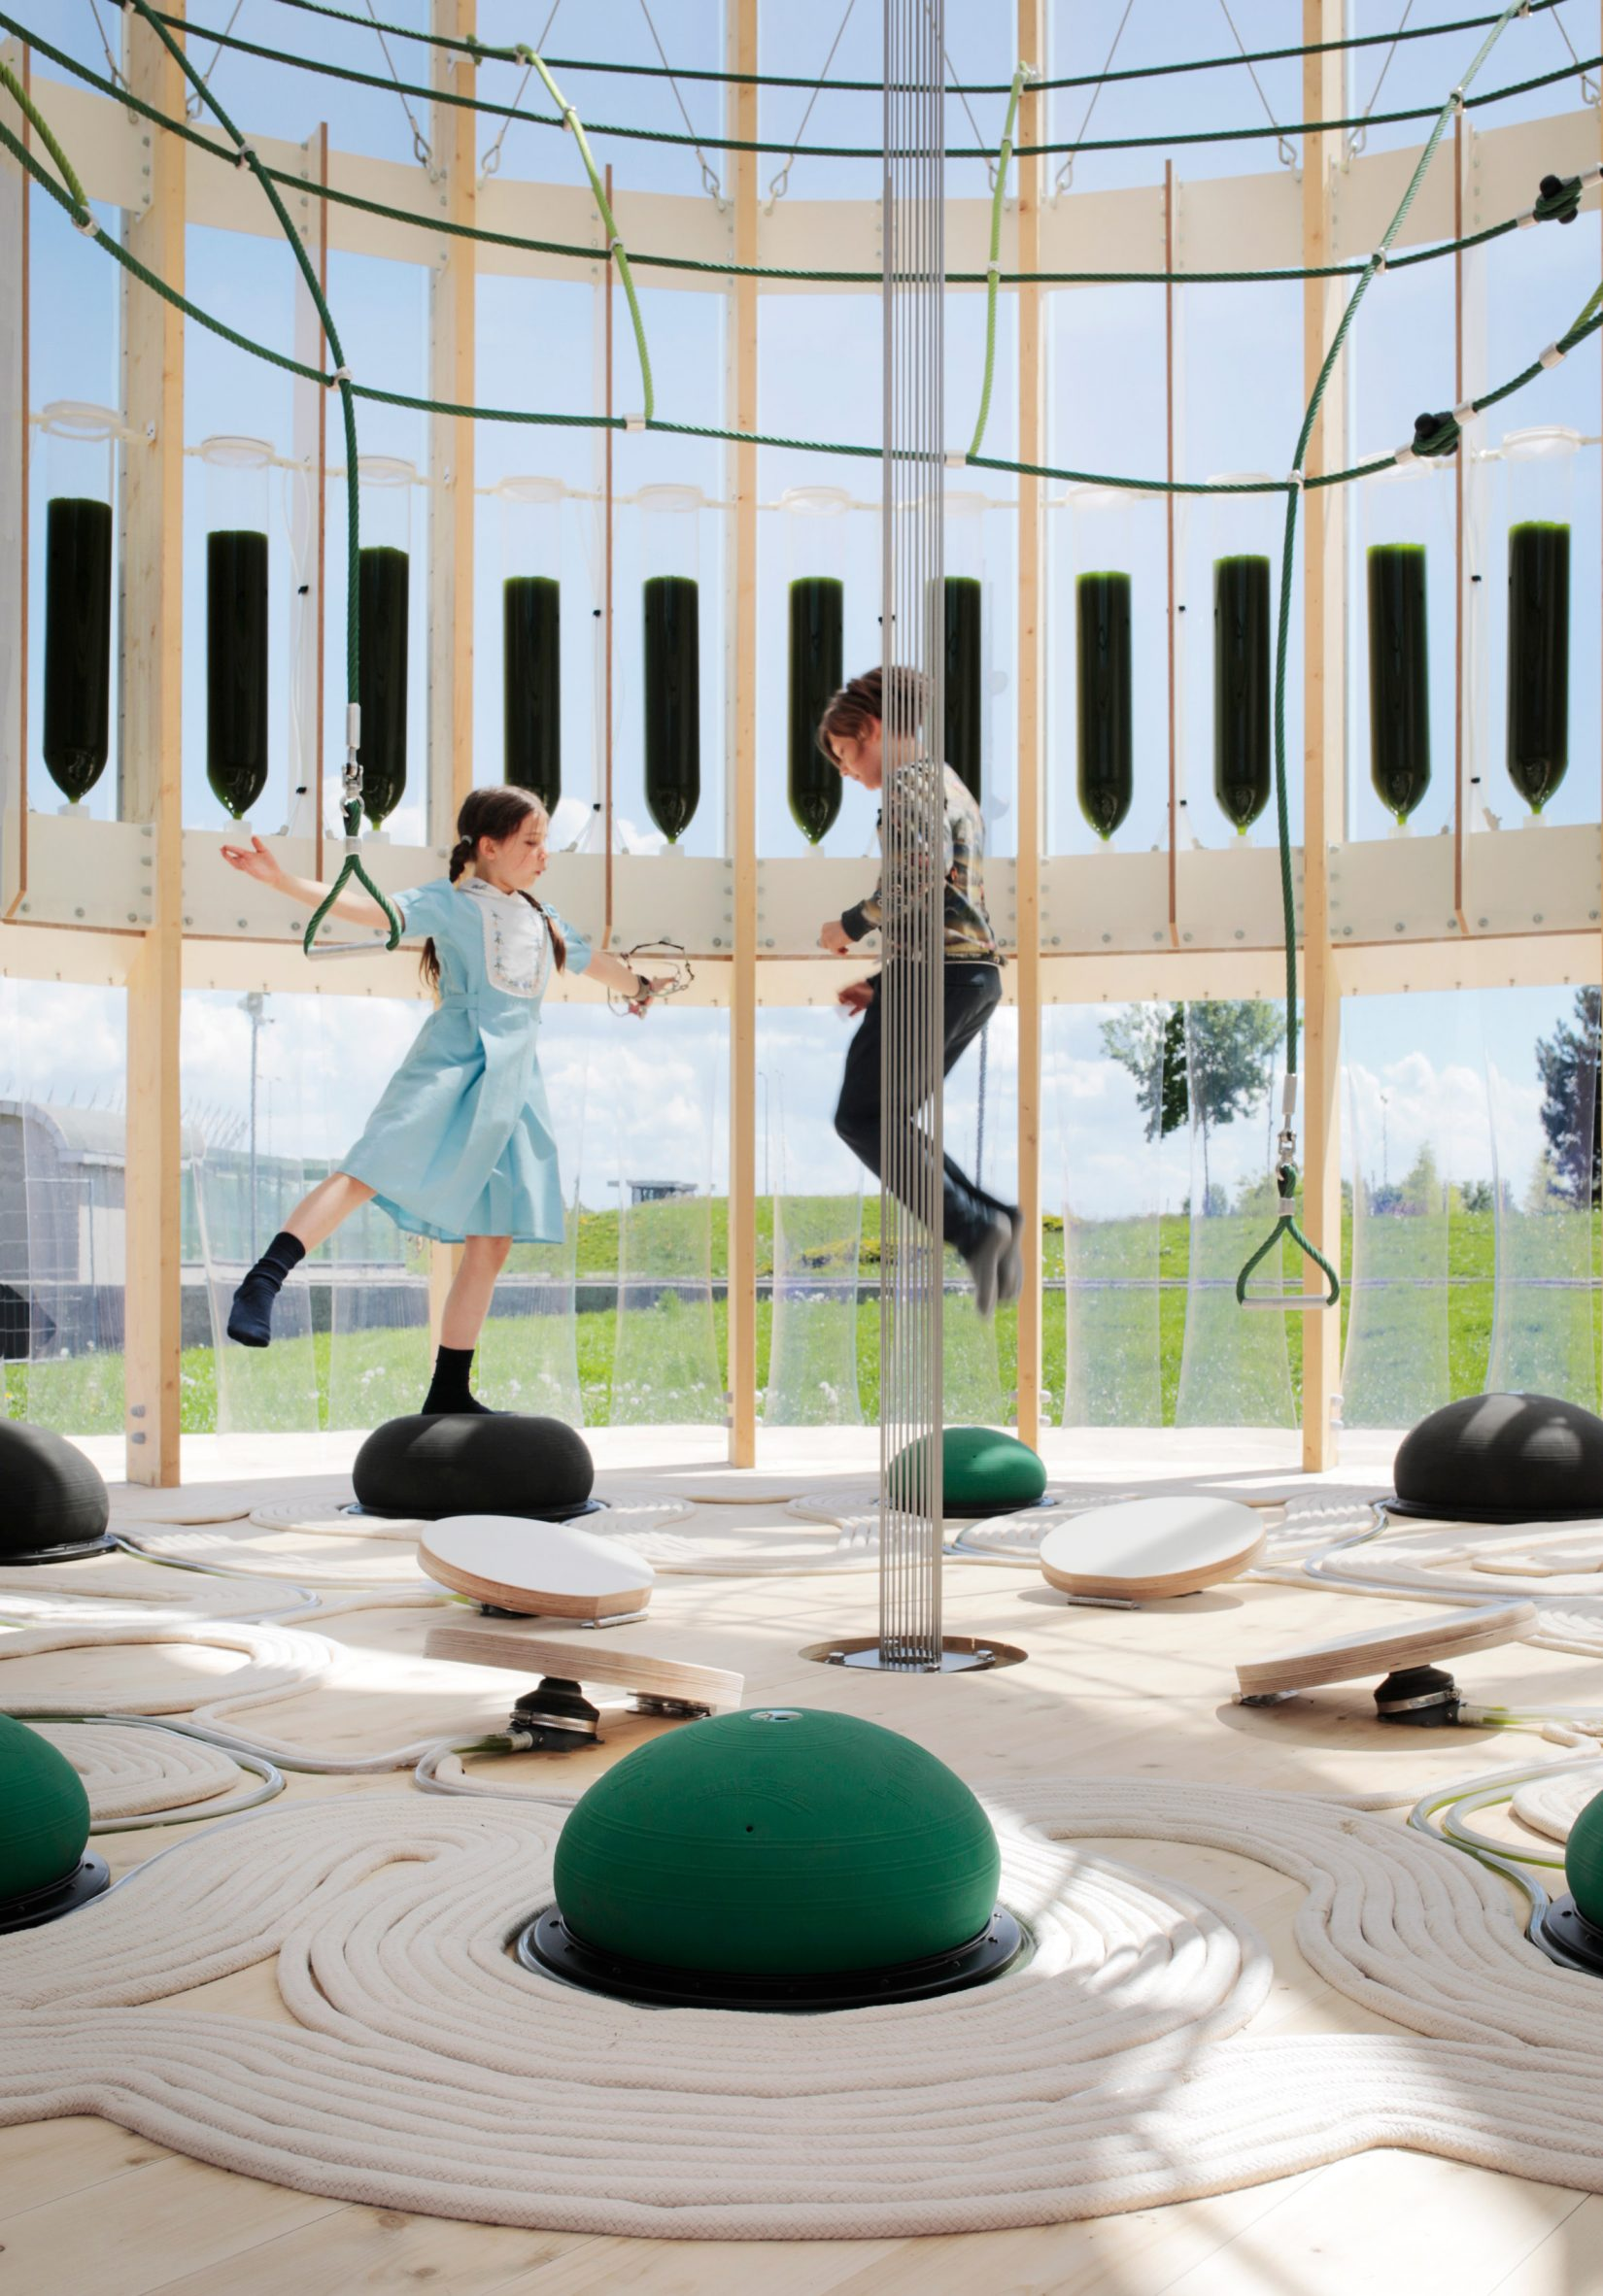 Children bounce on spheres inside the AirBubble playground